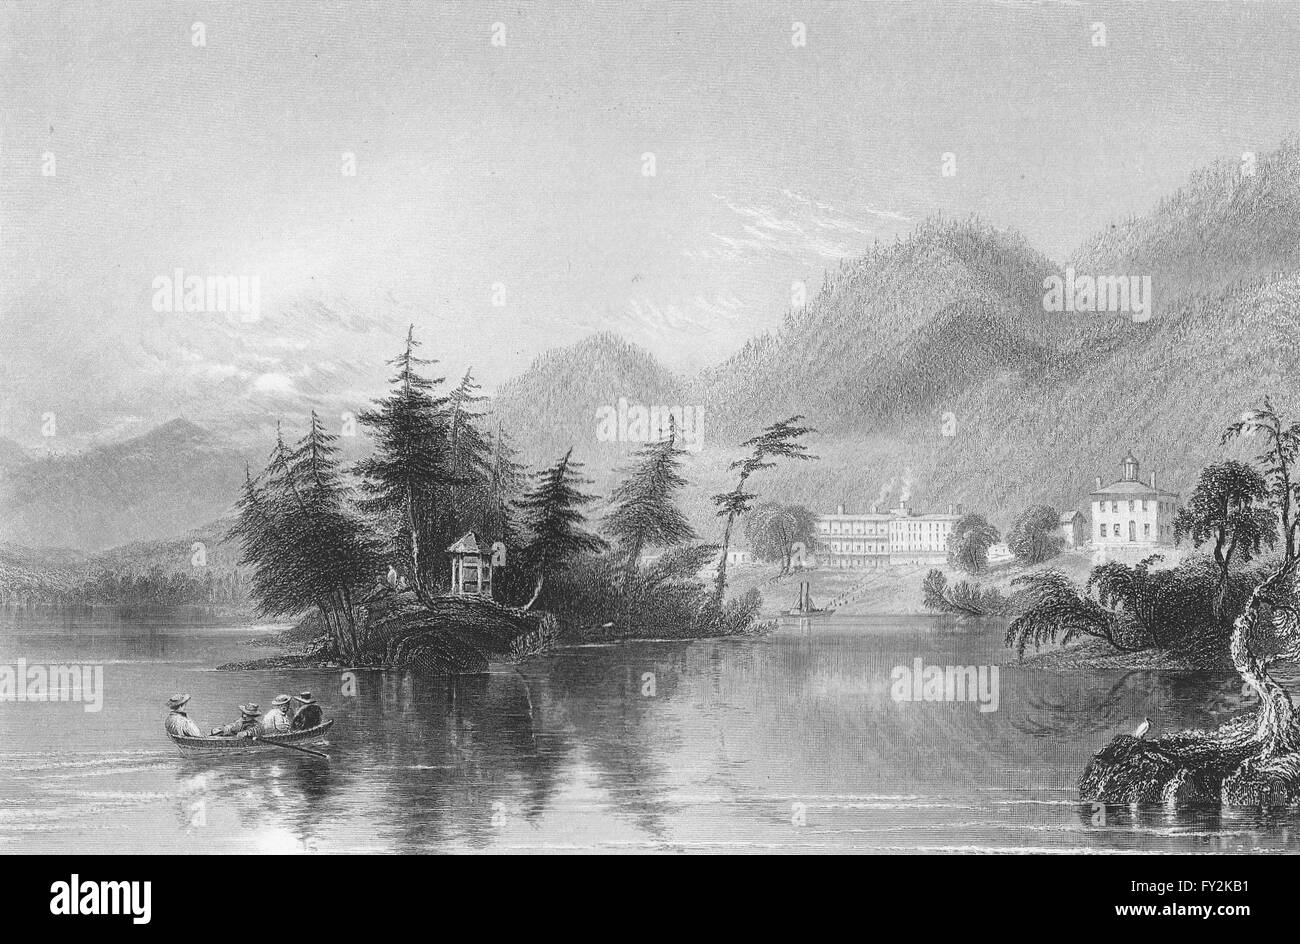 Caldwell (Lake George), New York. WH BARTLETT, antique print 1840 Stock Photo